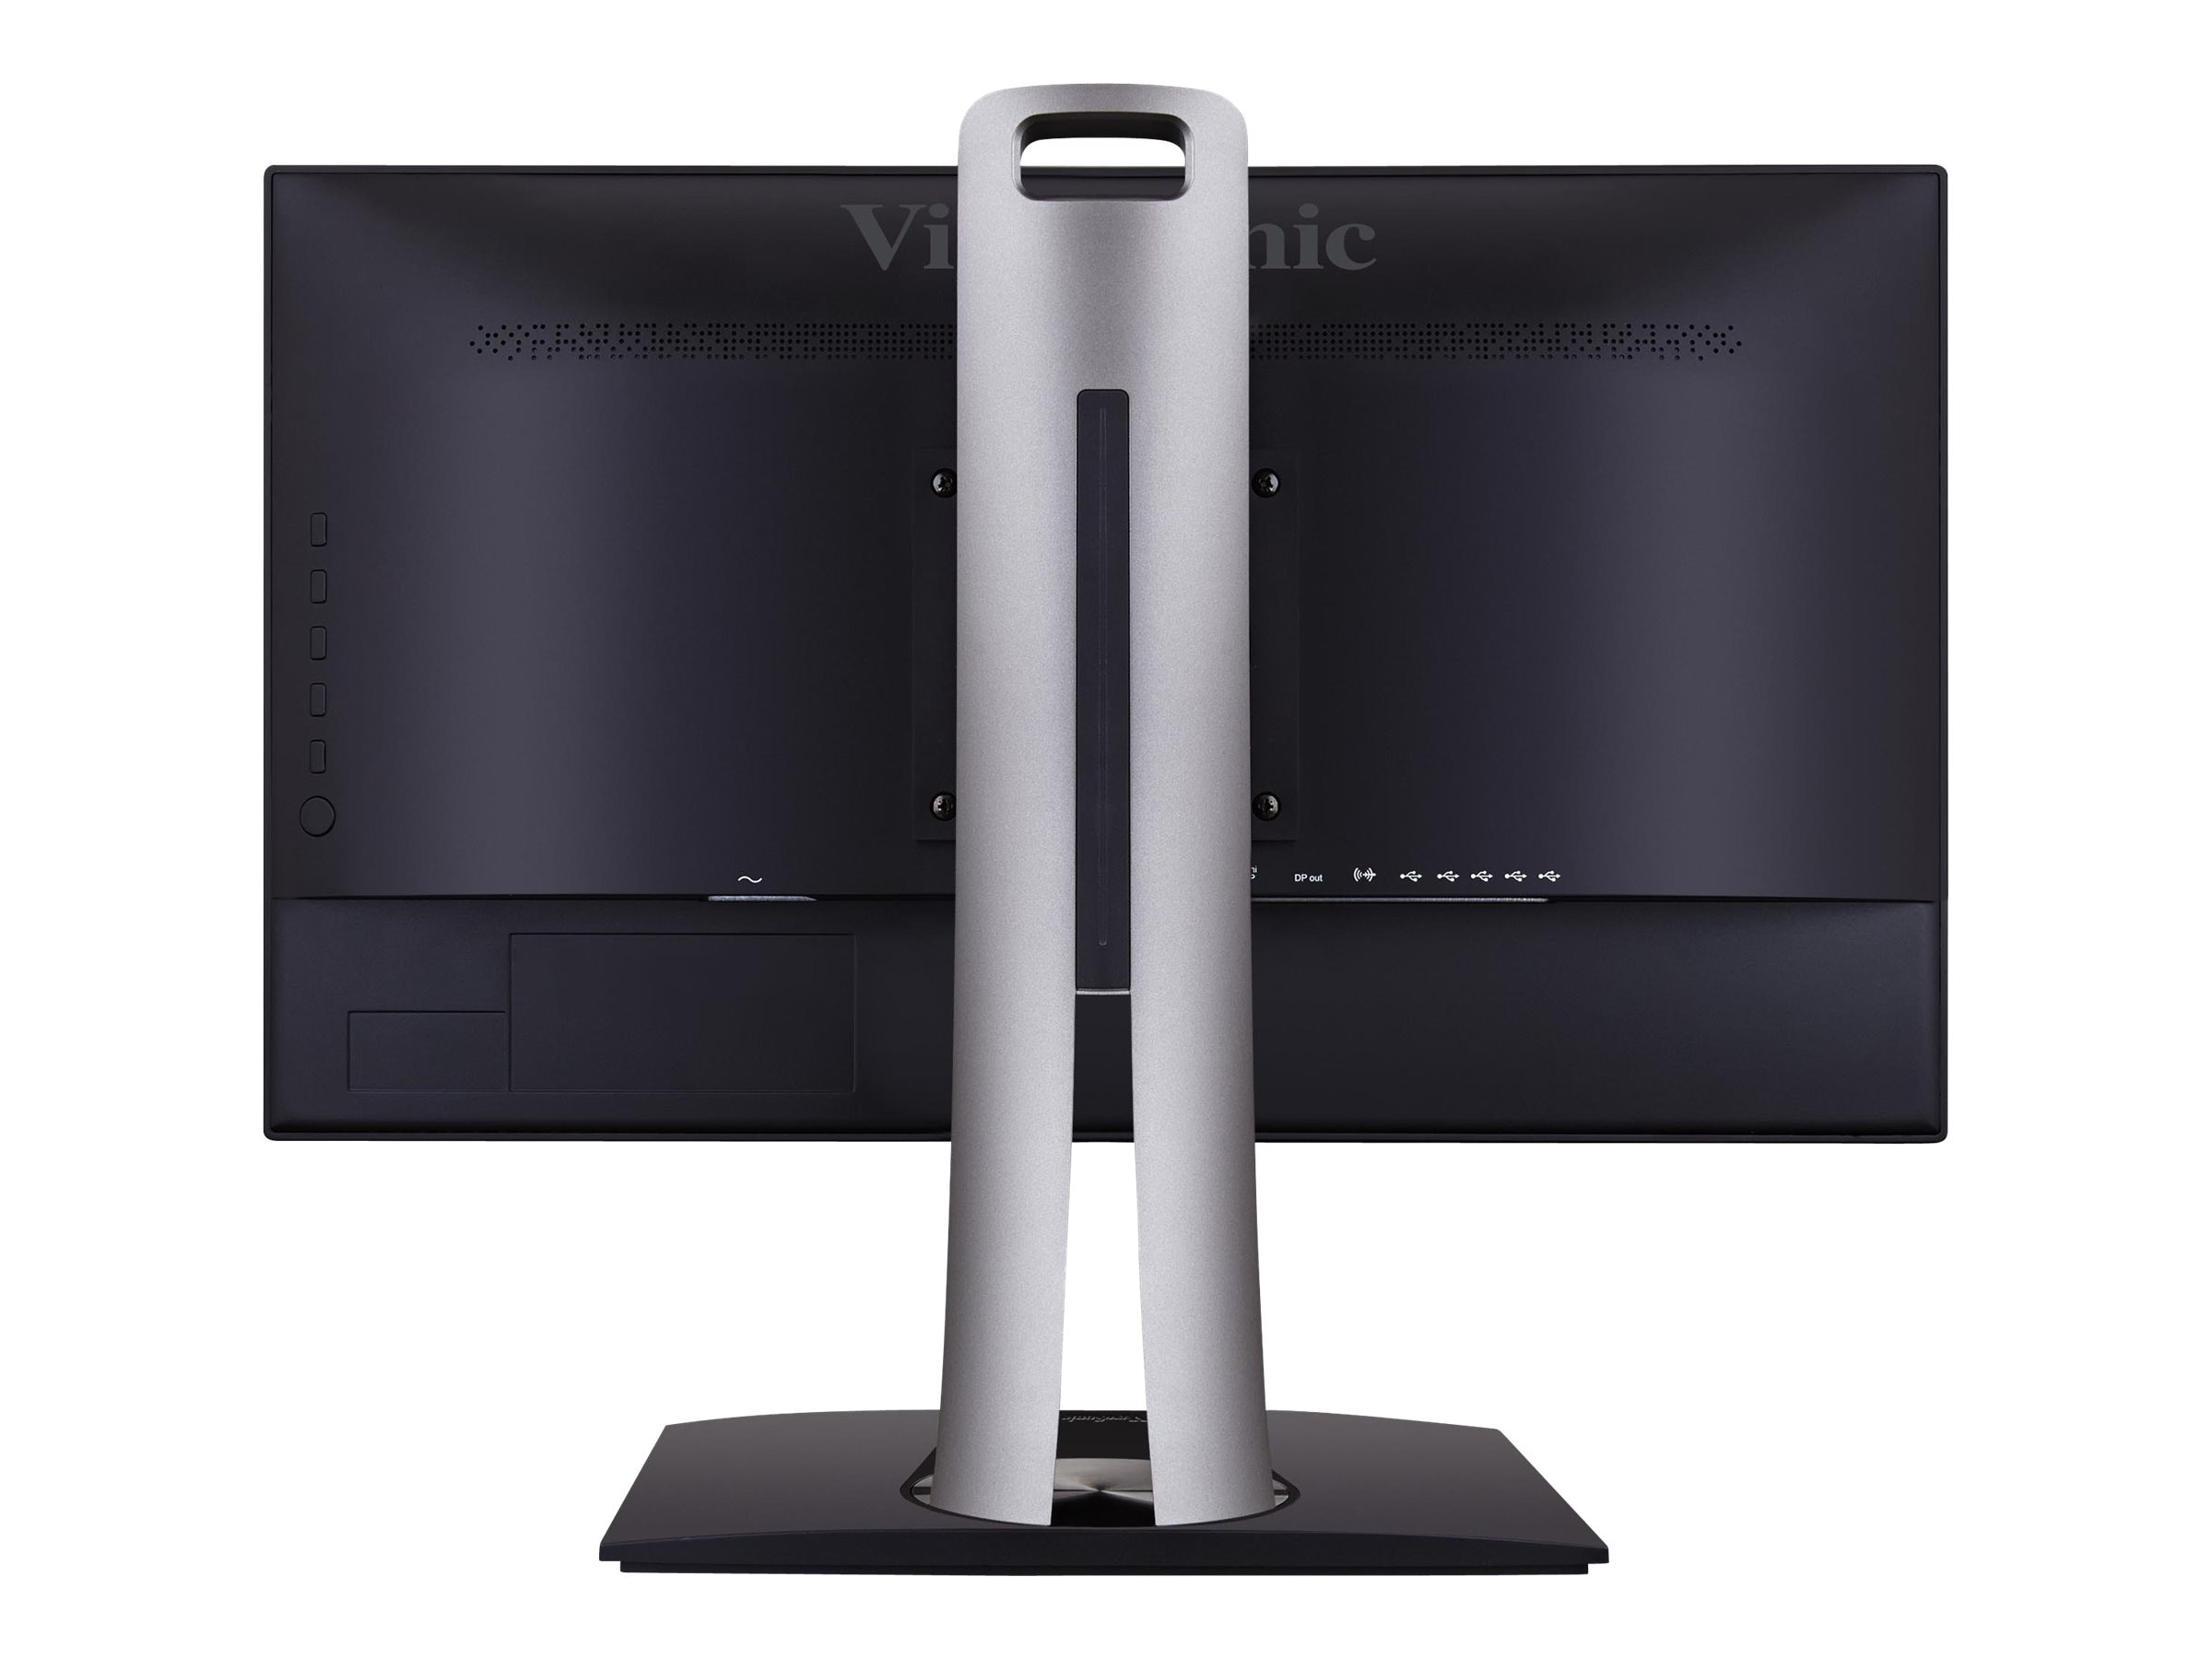 ViewSonic 24 VP2468 Full HD LED-LCD Monitor, Black, VP2468